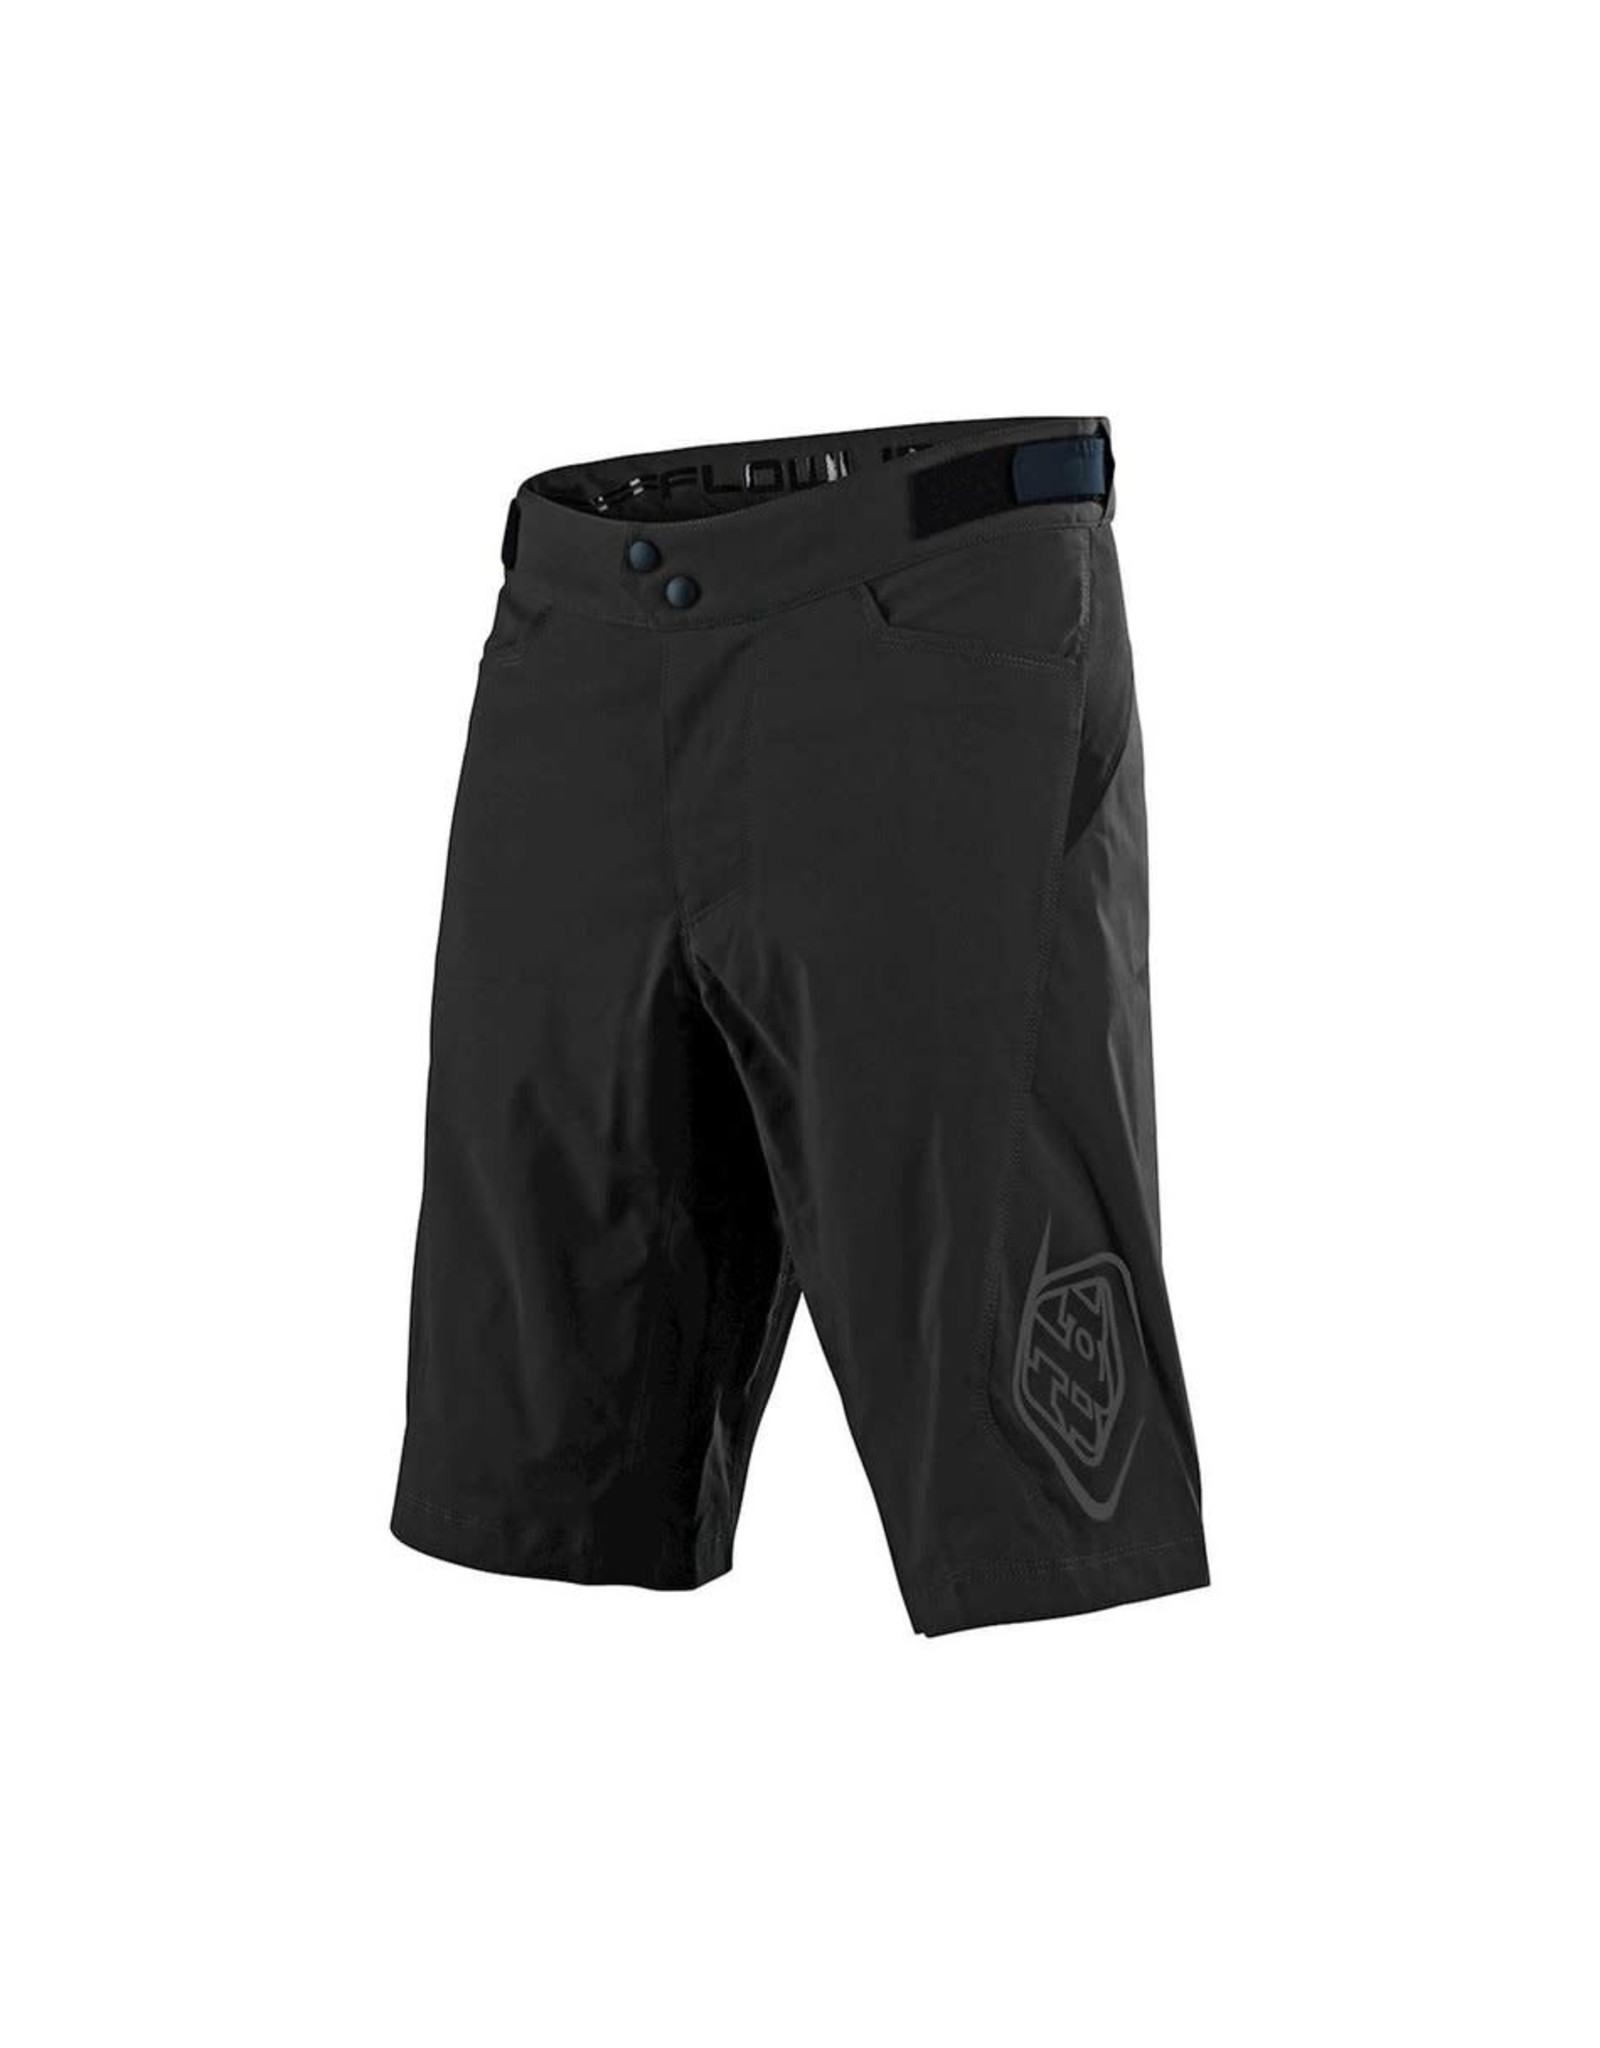 FLOWLINE SHORT; BLACK 32